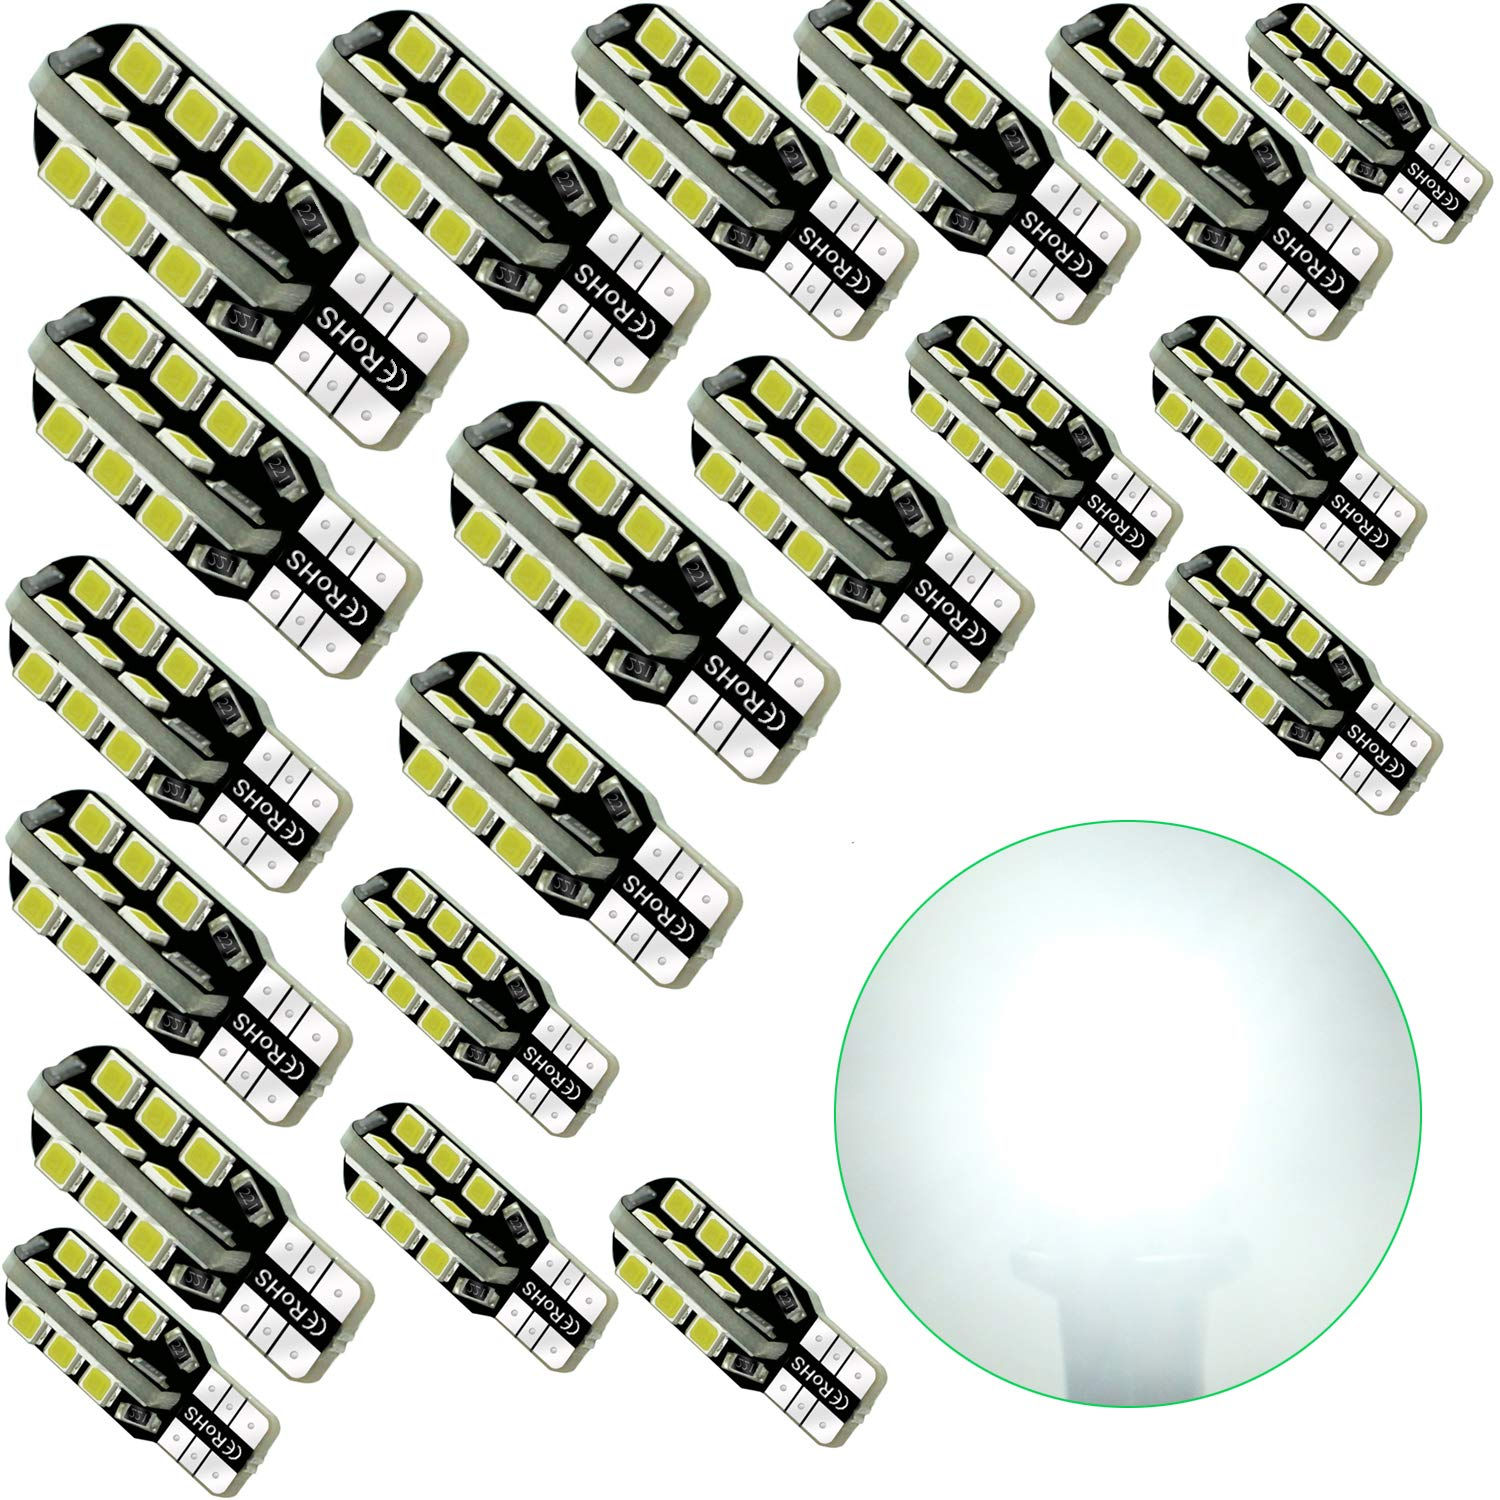 Debonauto-10 x T15 LED Light Bulb Super Bright 6000k 12v T10 921 168 194 Trailer, Boat, RV, Iandscaping & Camper Interior Wedge 24-SMD(Pure White)